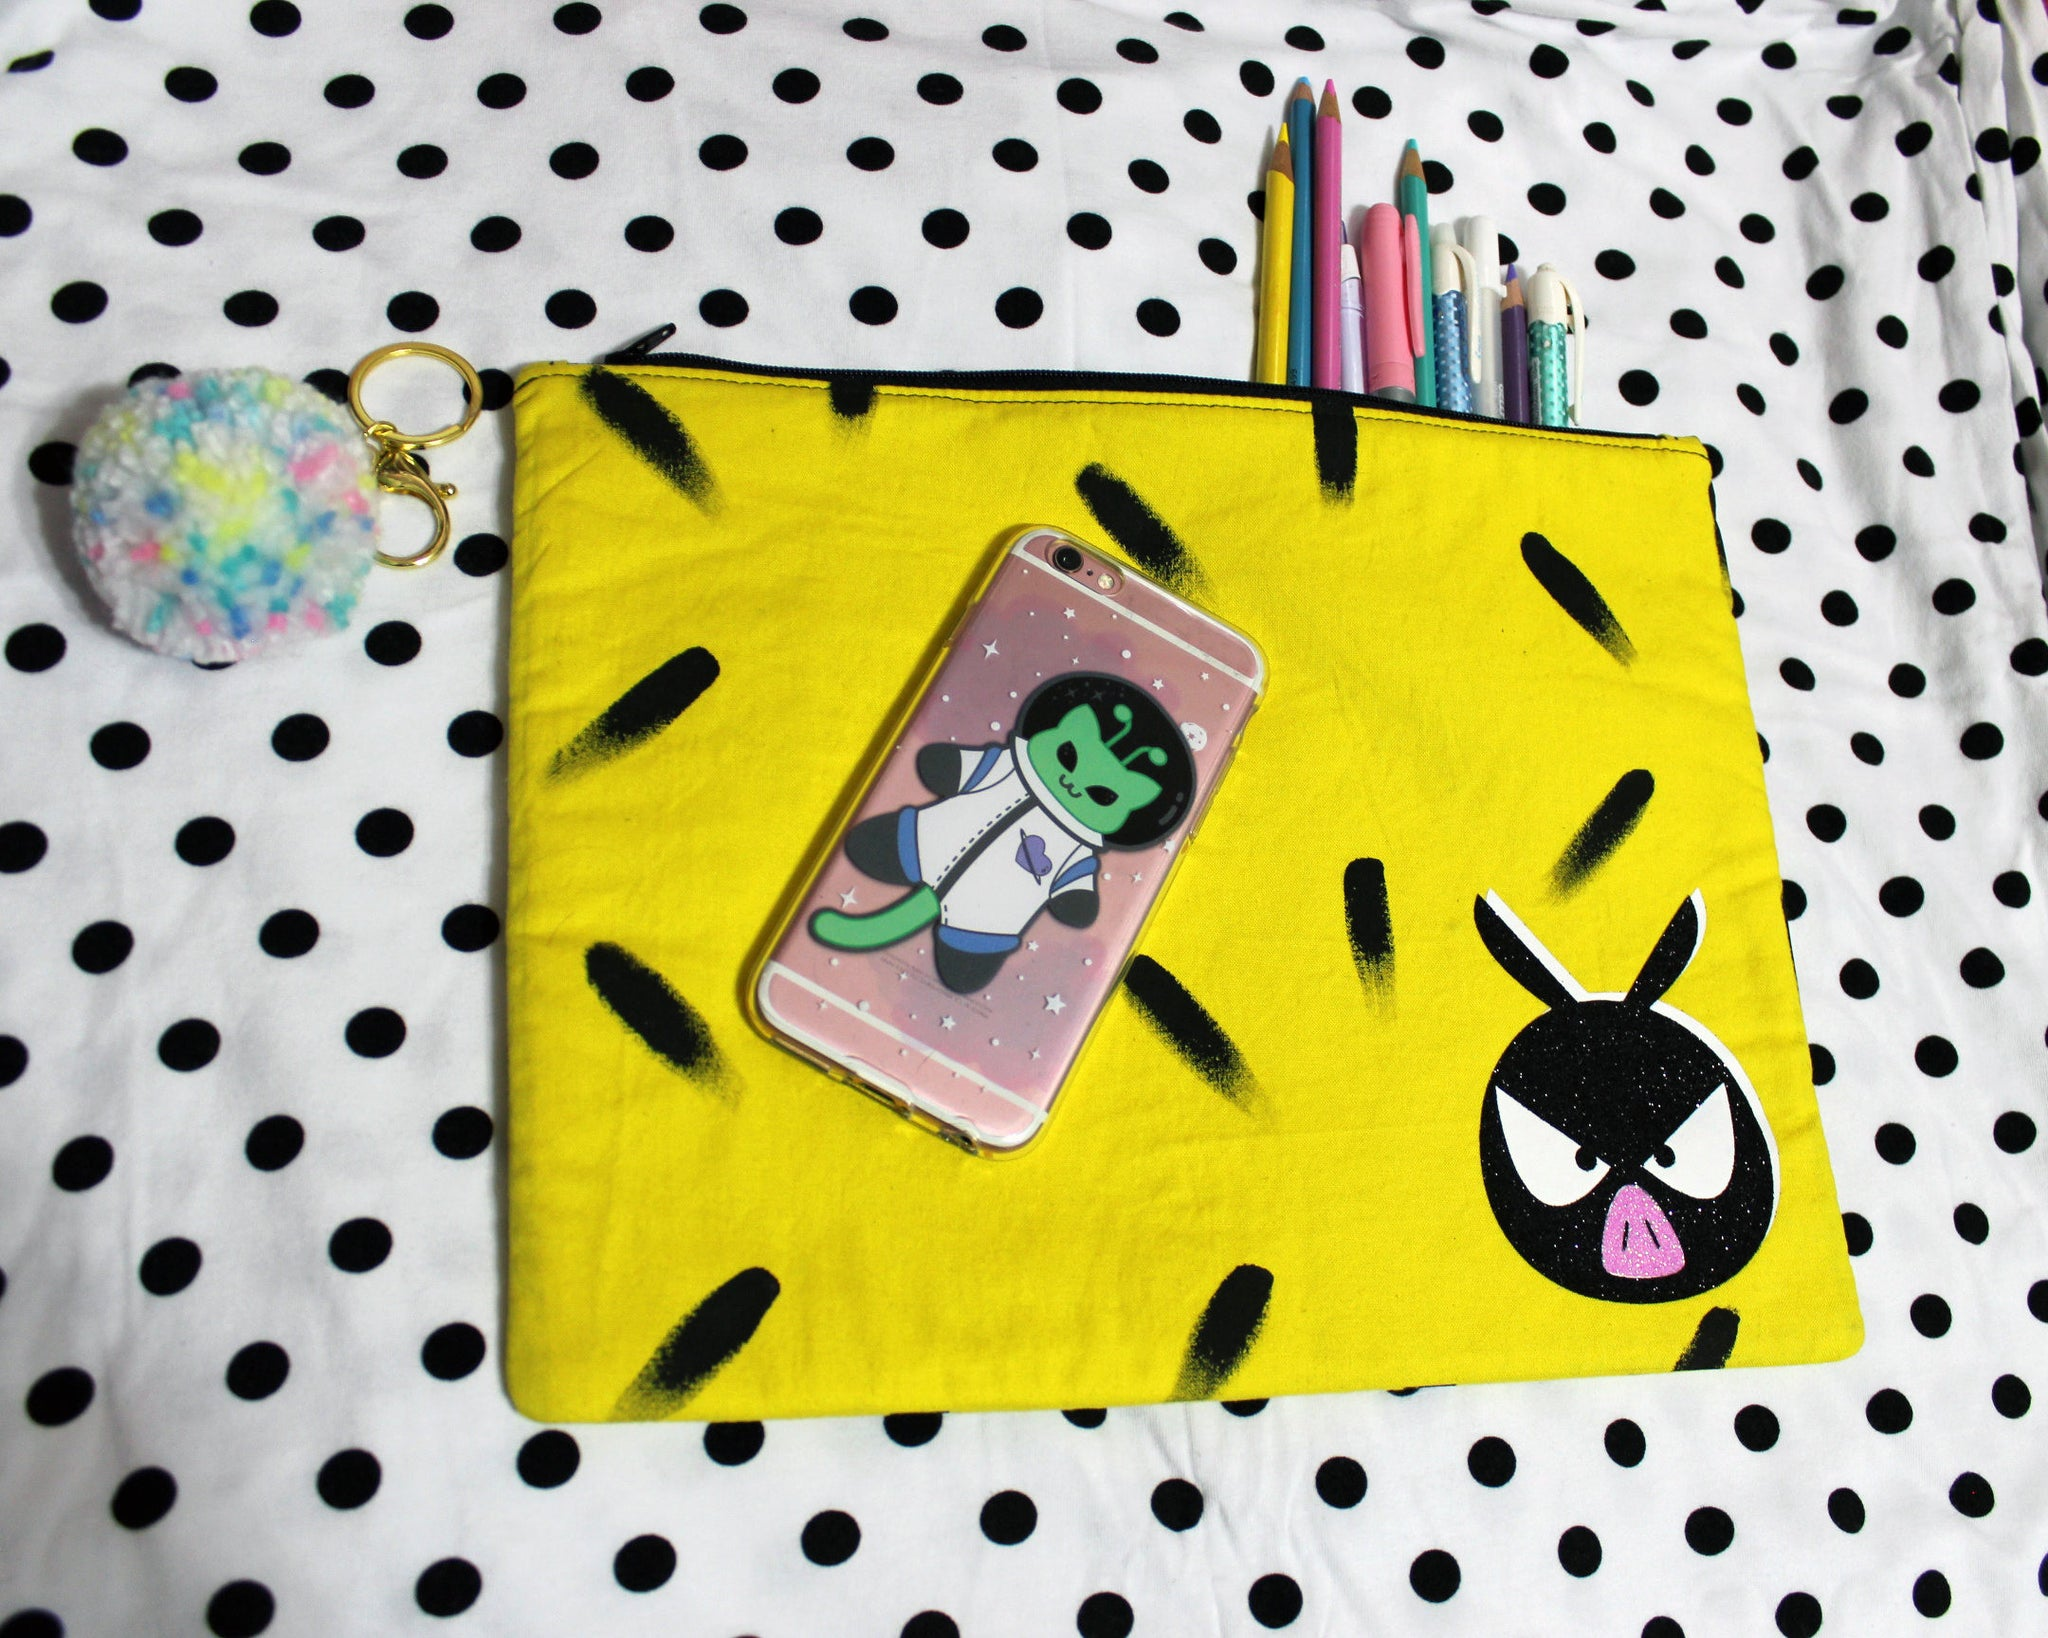 Little Black Pig Anime Inspired Zipper Pouch - Handmade with Hand Painted Fabric LIMITED